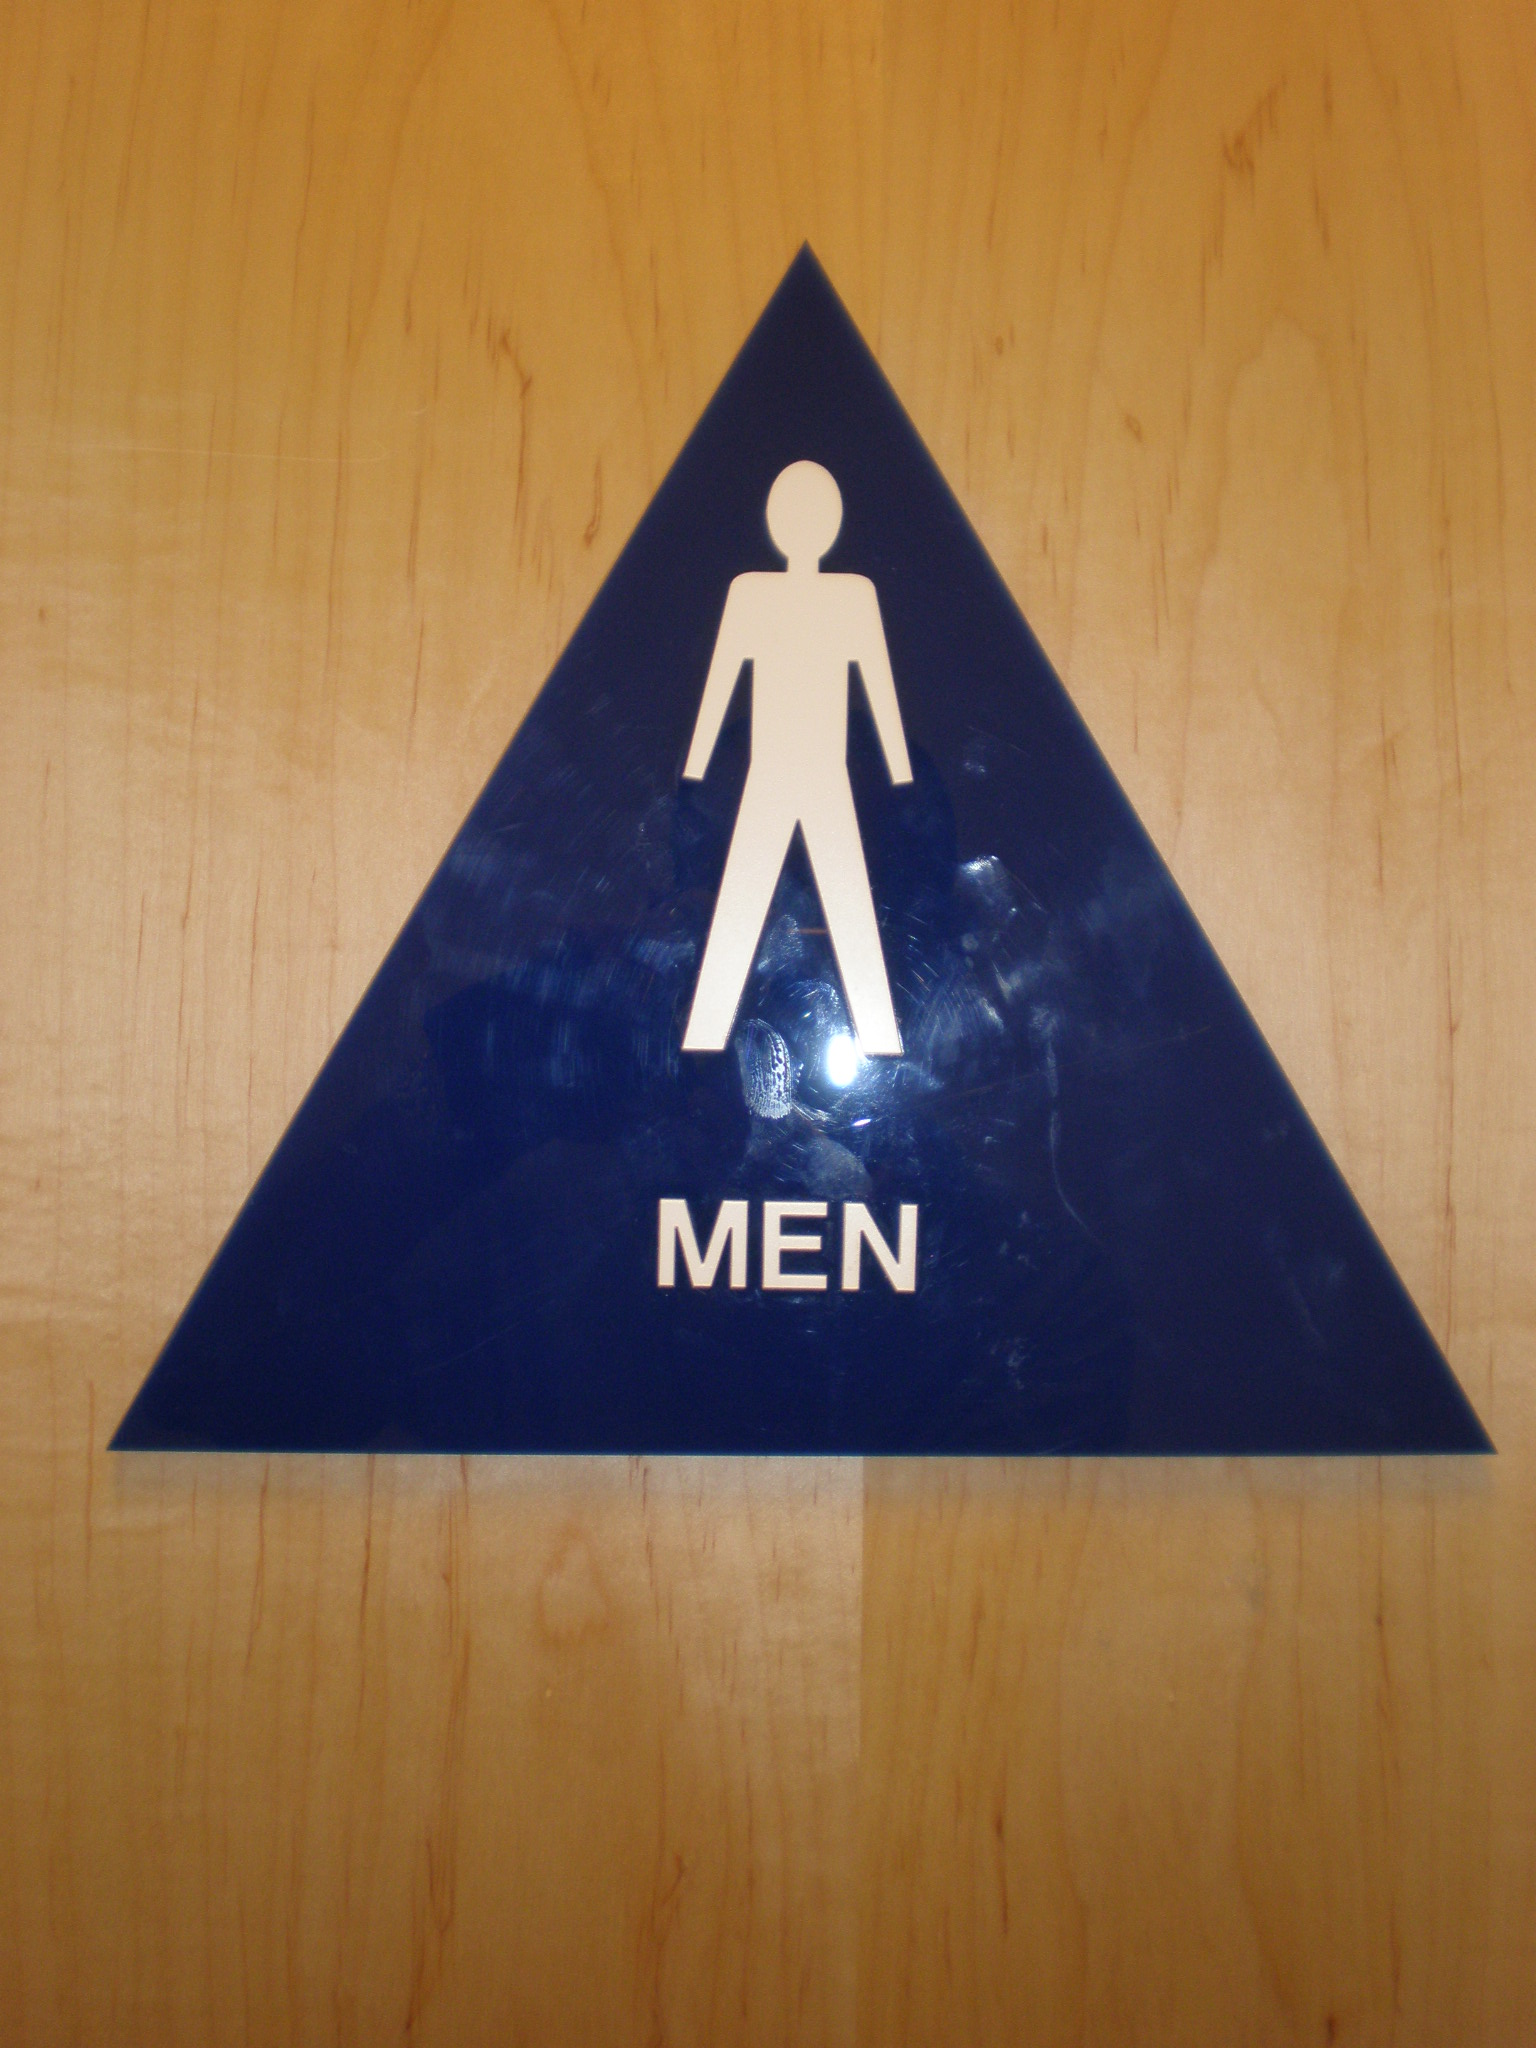 Bathroom Signs Circle And Triangle file:blue plastic triangle male restroom sign - wikimedia commons